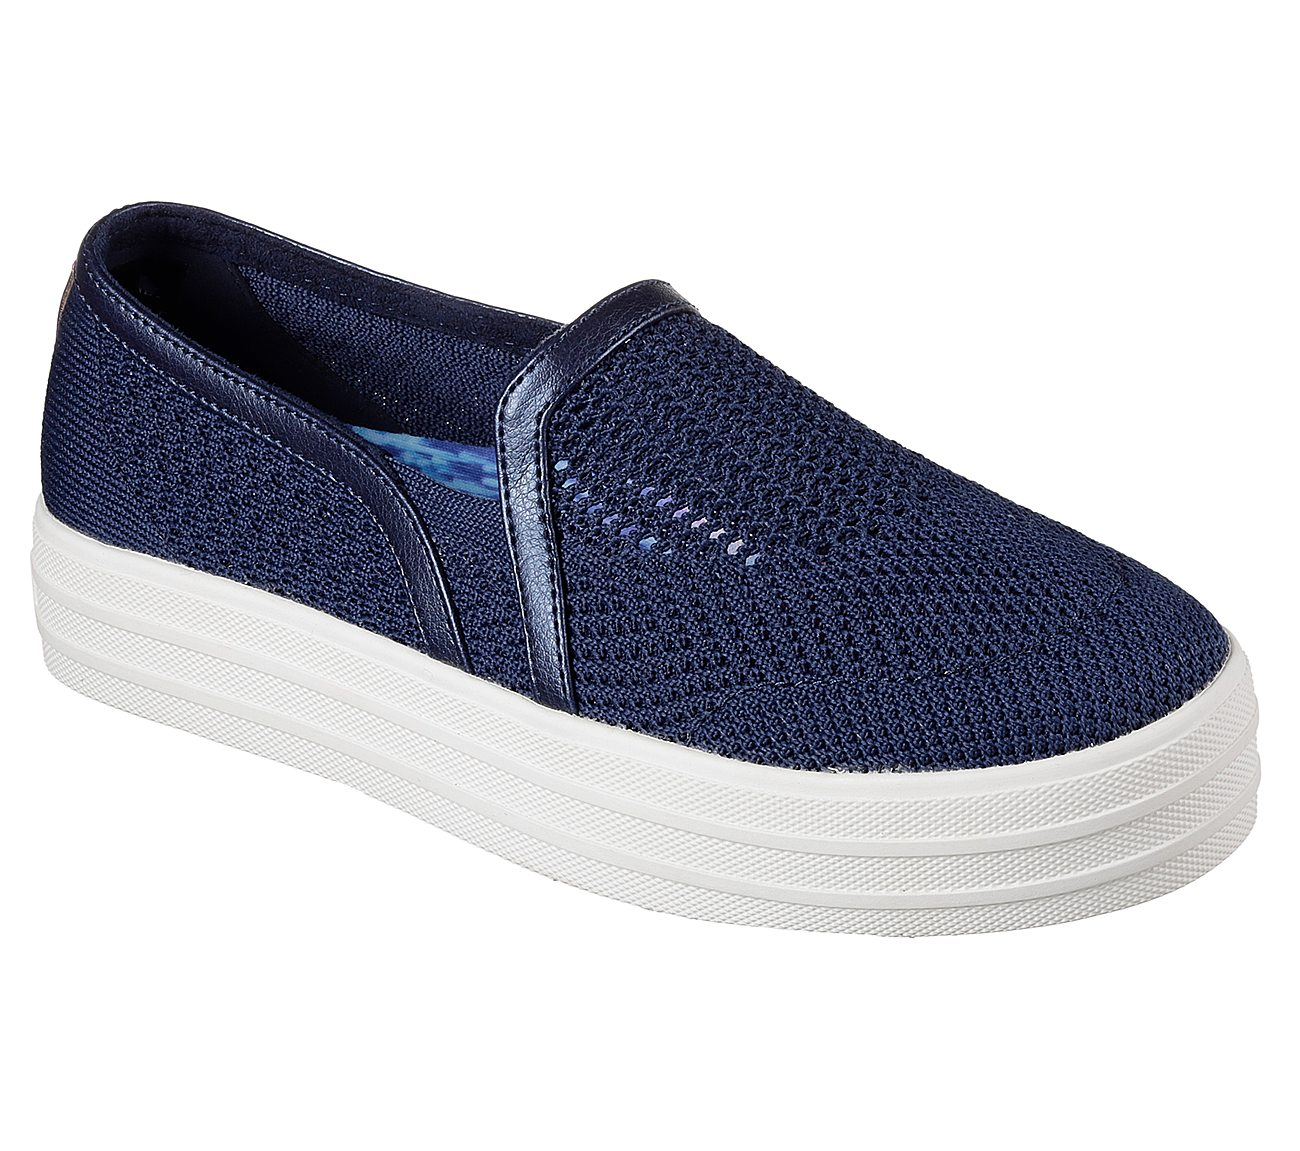 a9b074401d27 Buy SKECHERS Double Up - Rise Up SKECHER Street Shoes only  35.00